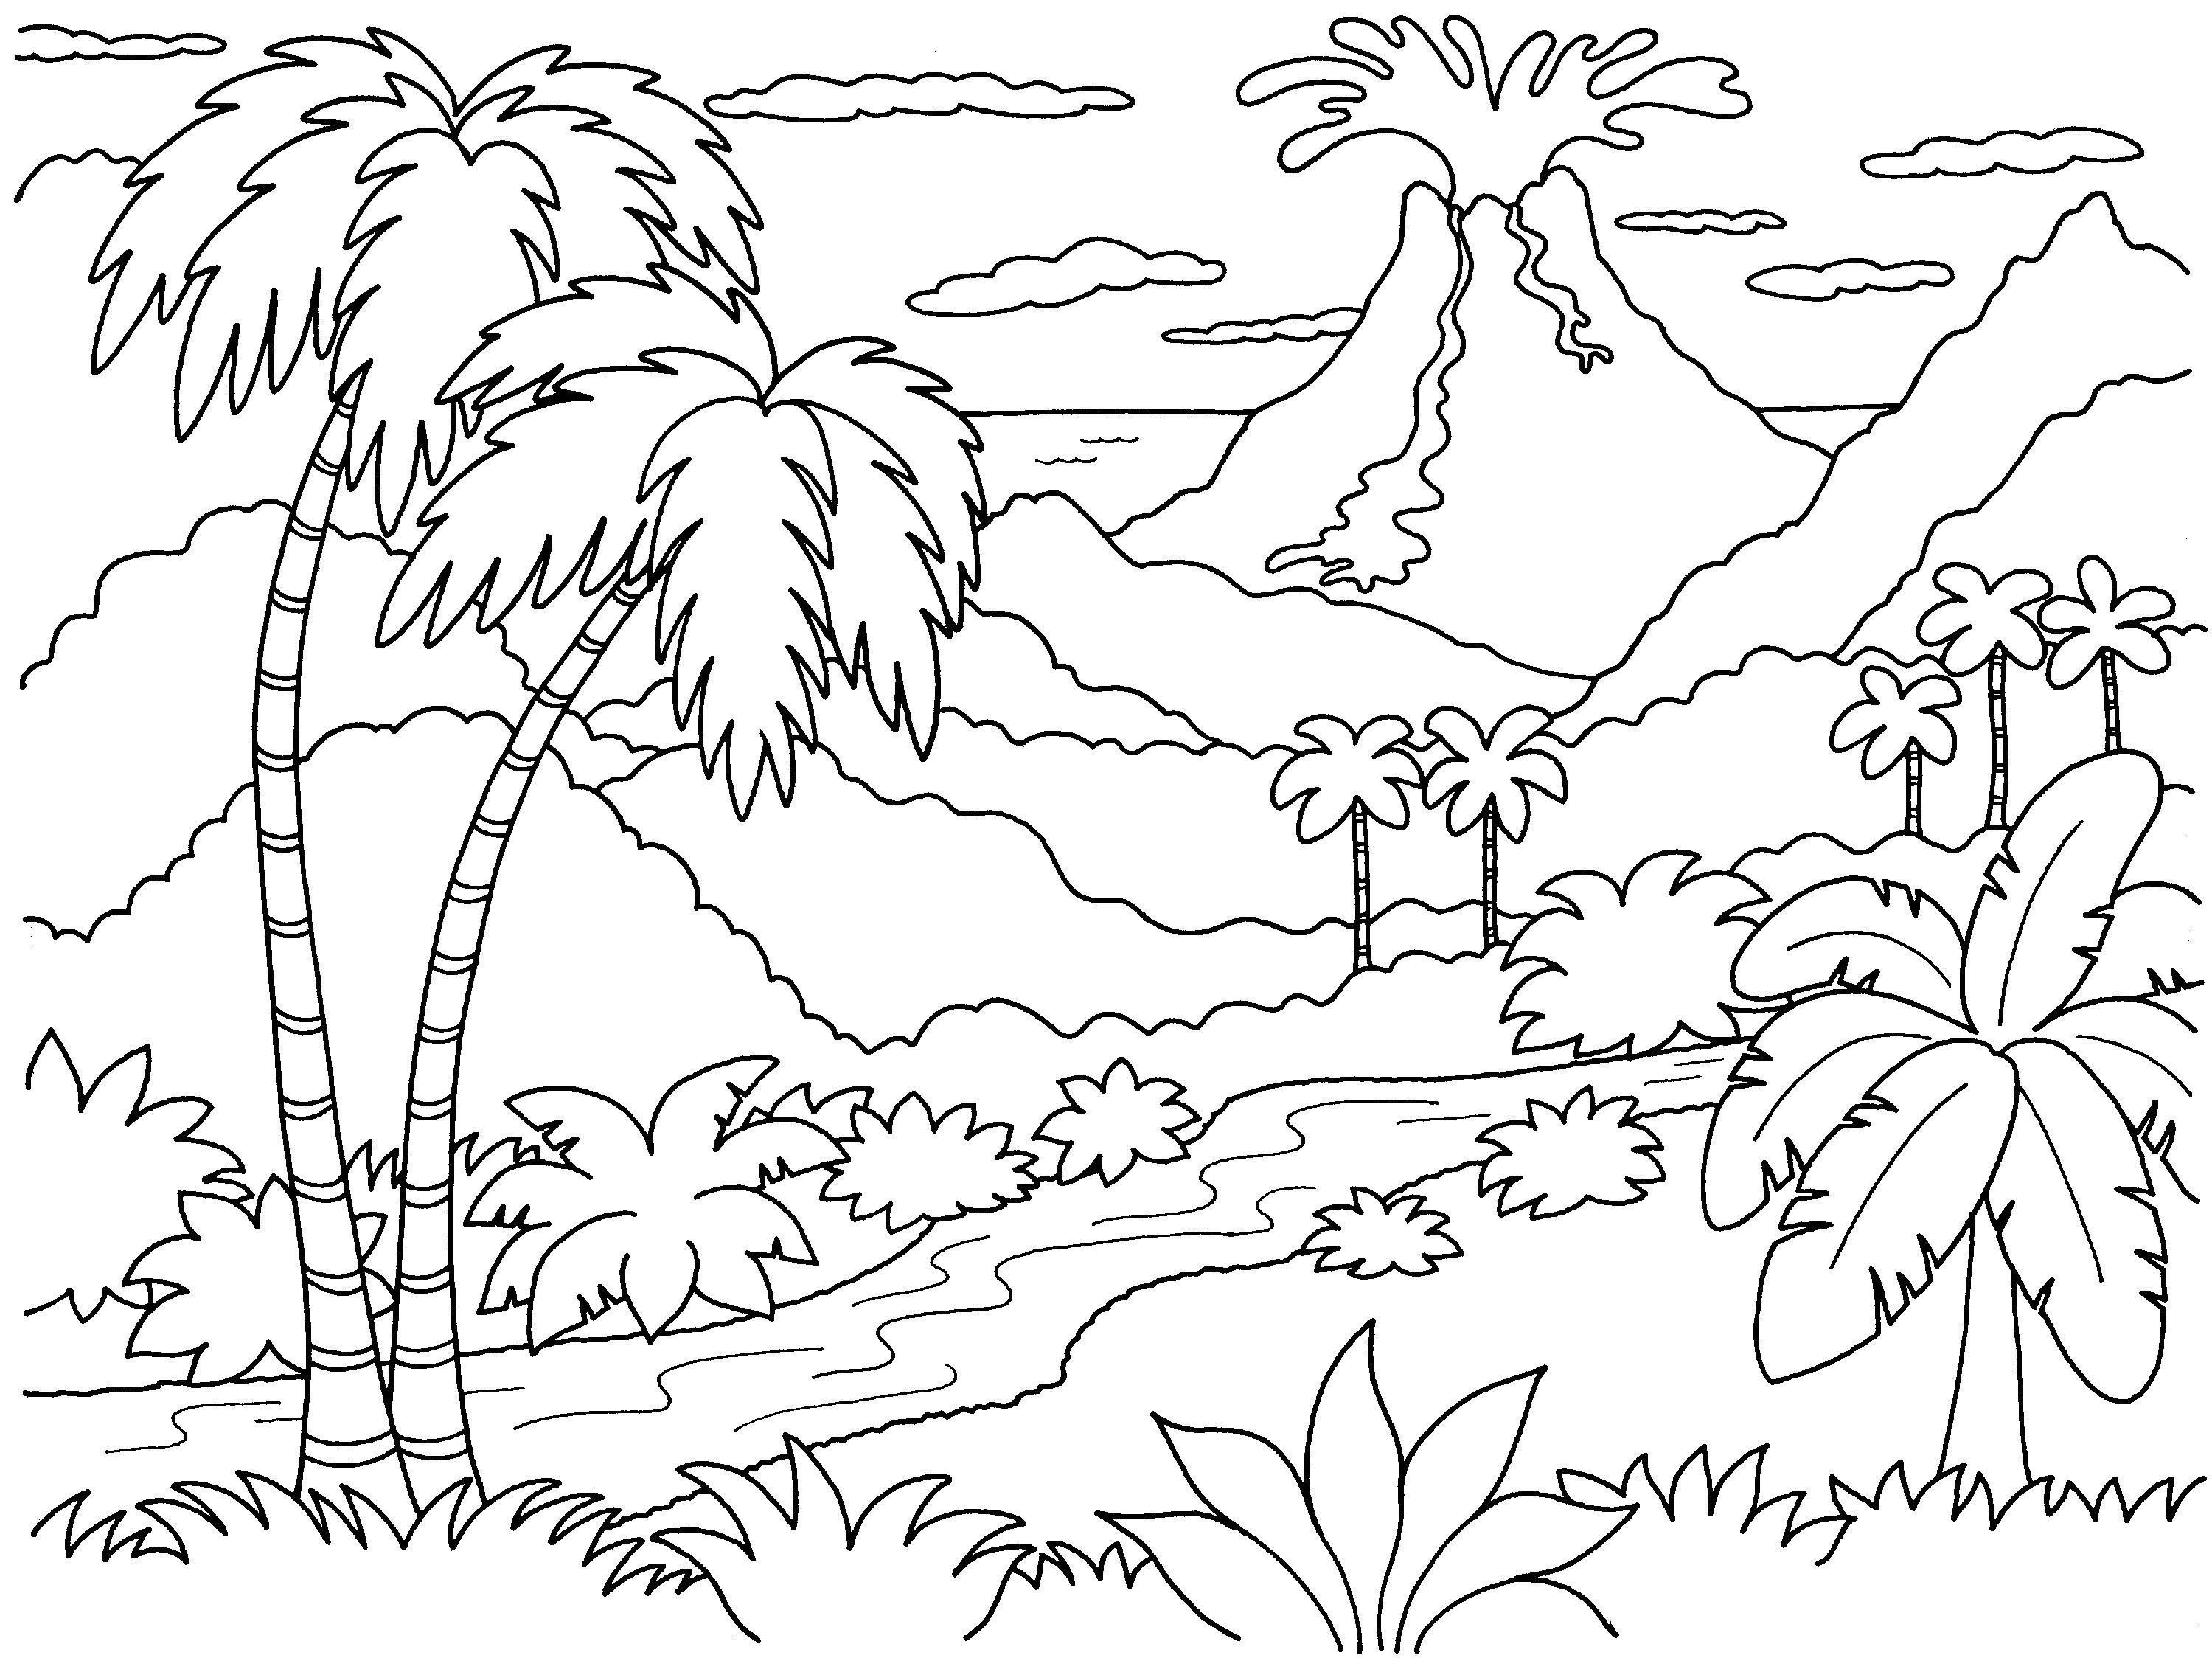 Scenery Coloring Pages For Adults Unique Coloring Pages Coloring Pages Landscape Sheets First Gra In 2020 Coloring Pages Nature Beach Coloring Pages Tree Coloring Page